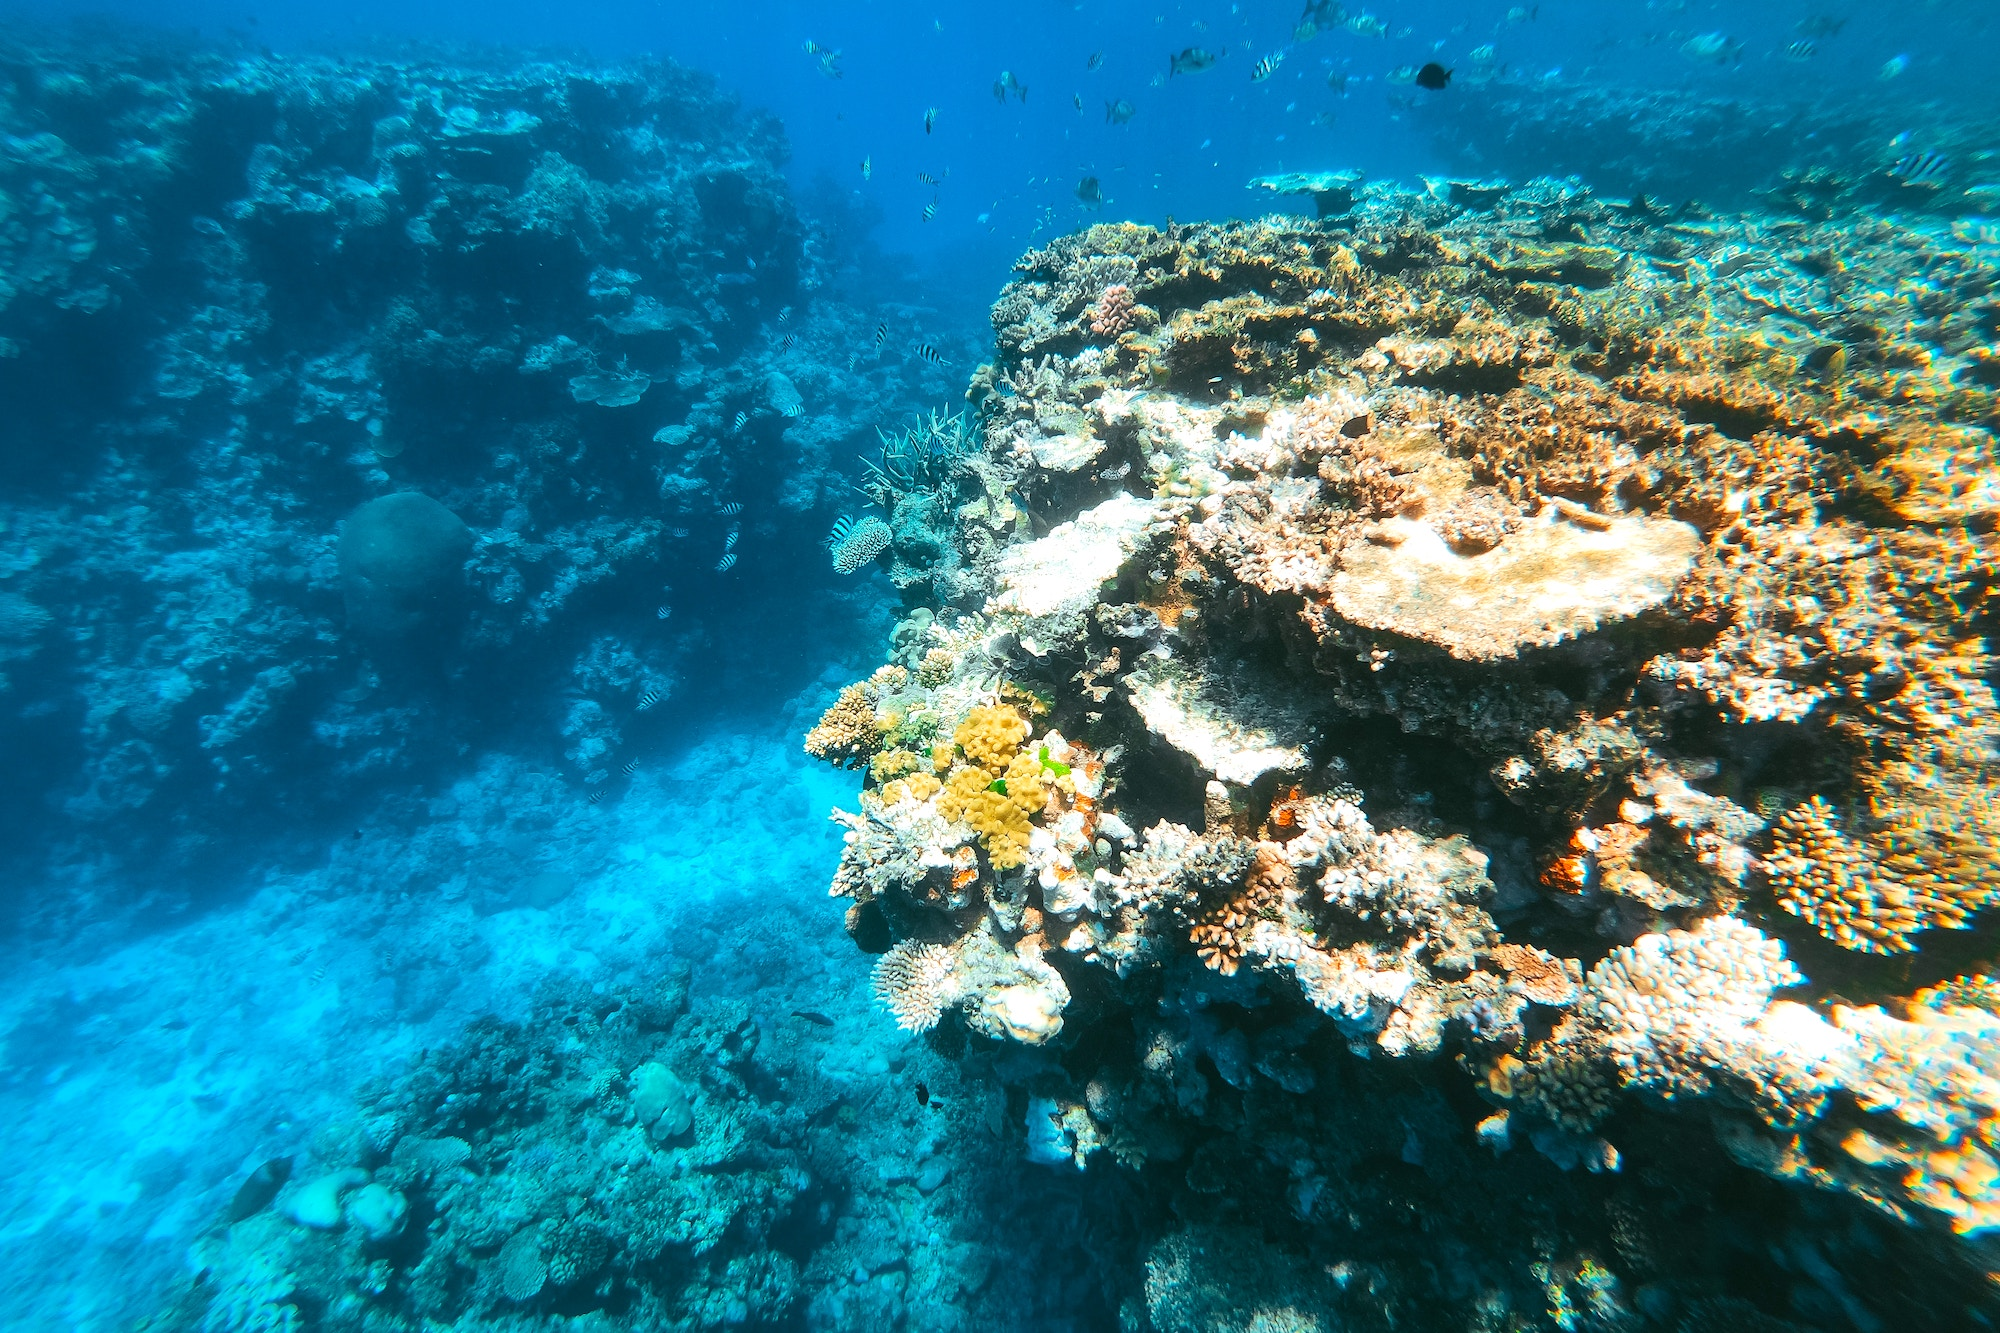 Coral in Great Barrier Reef Australia